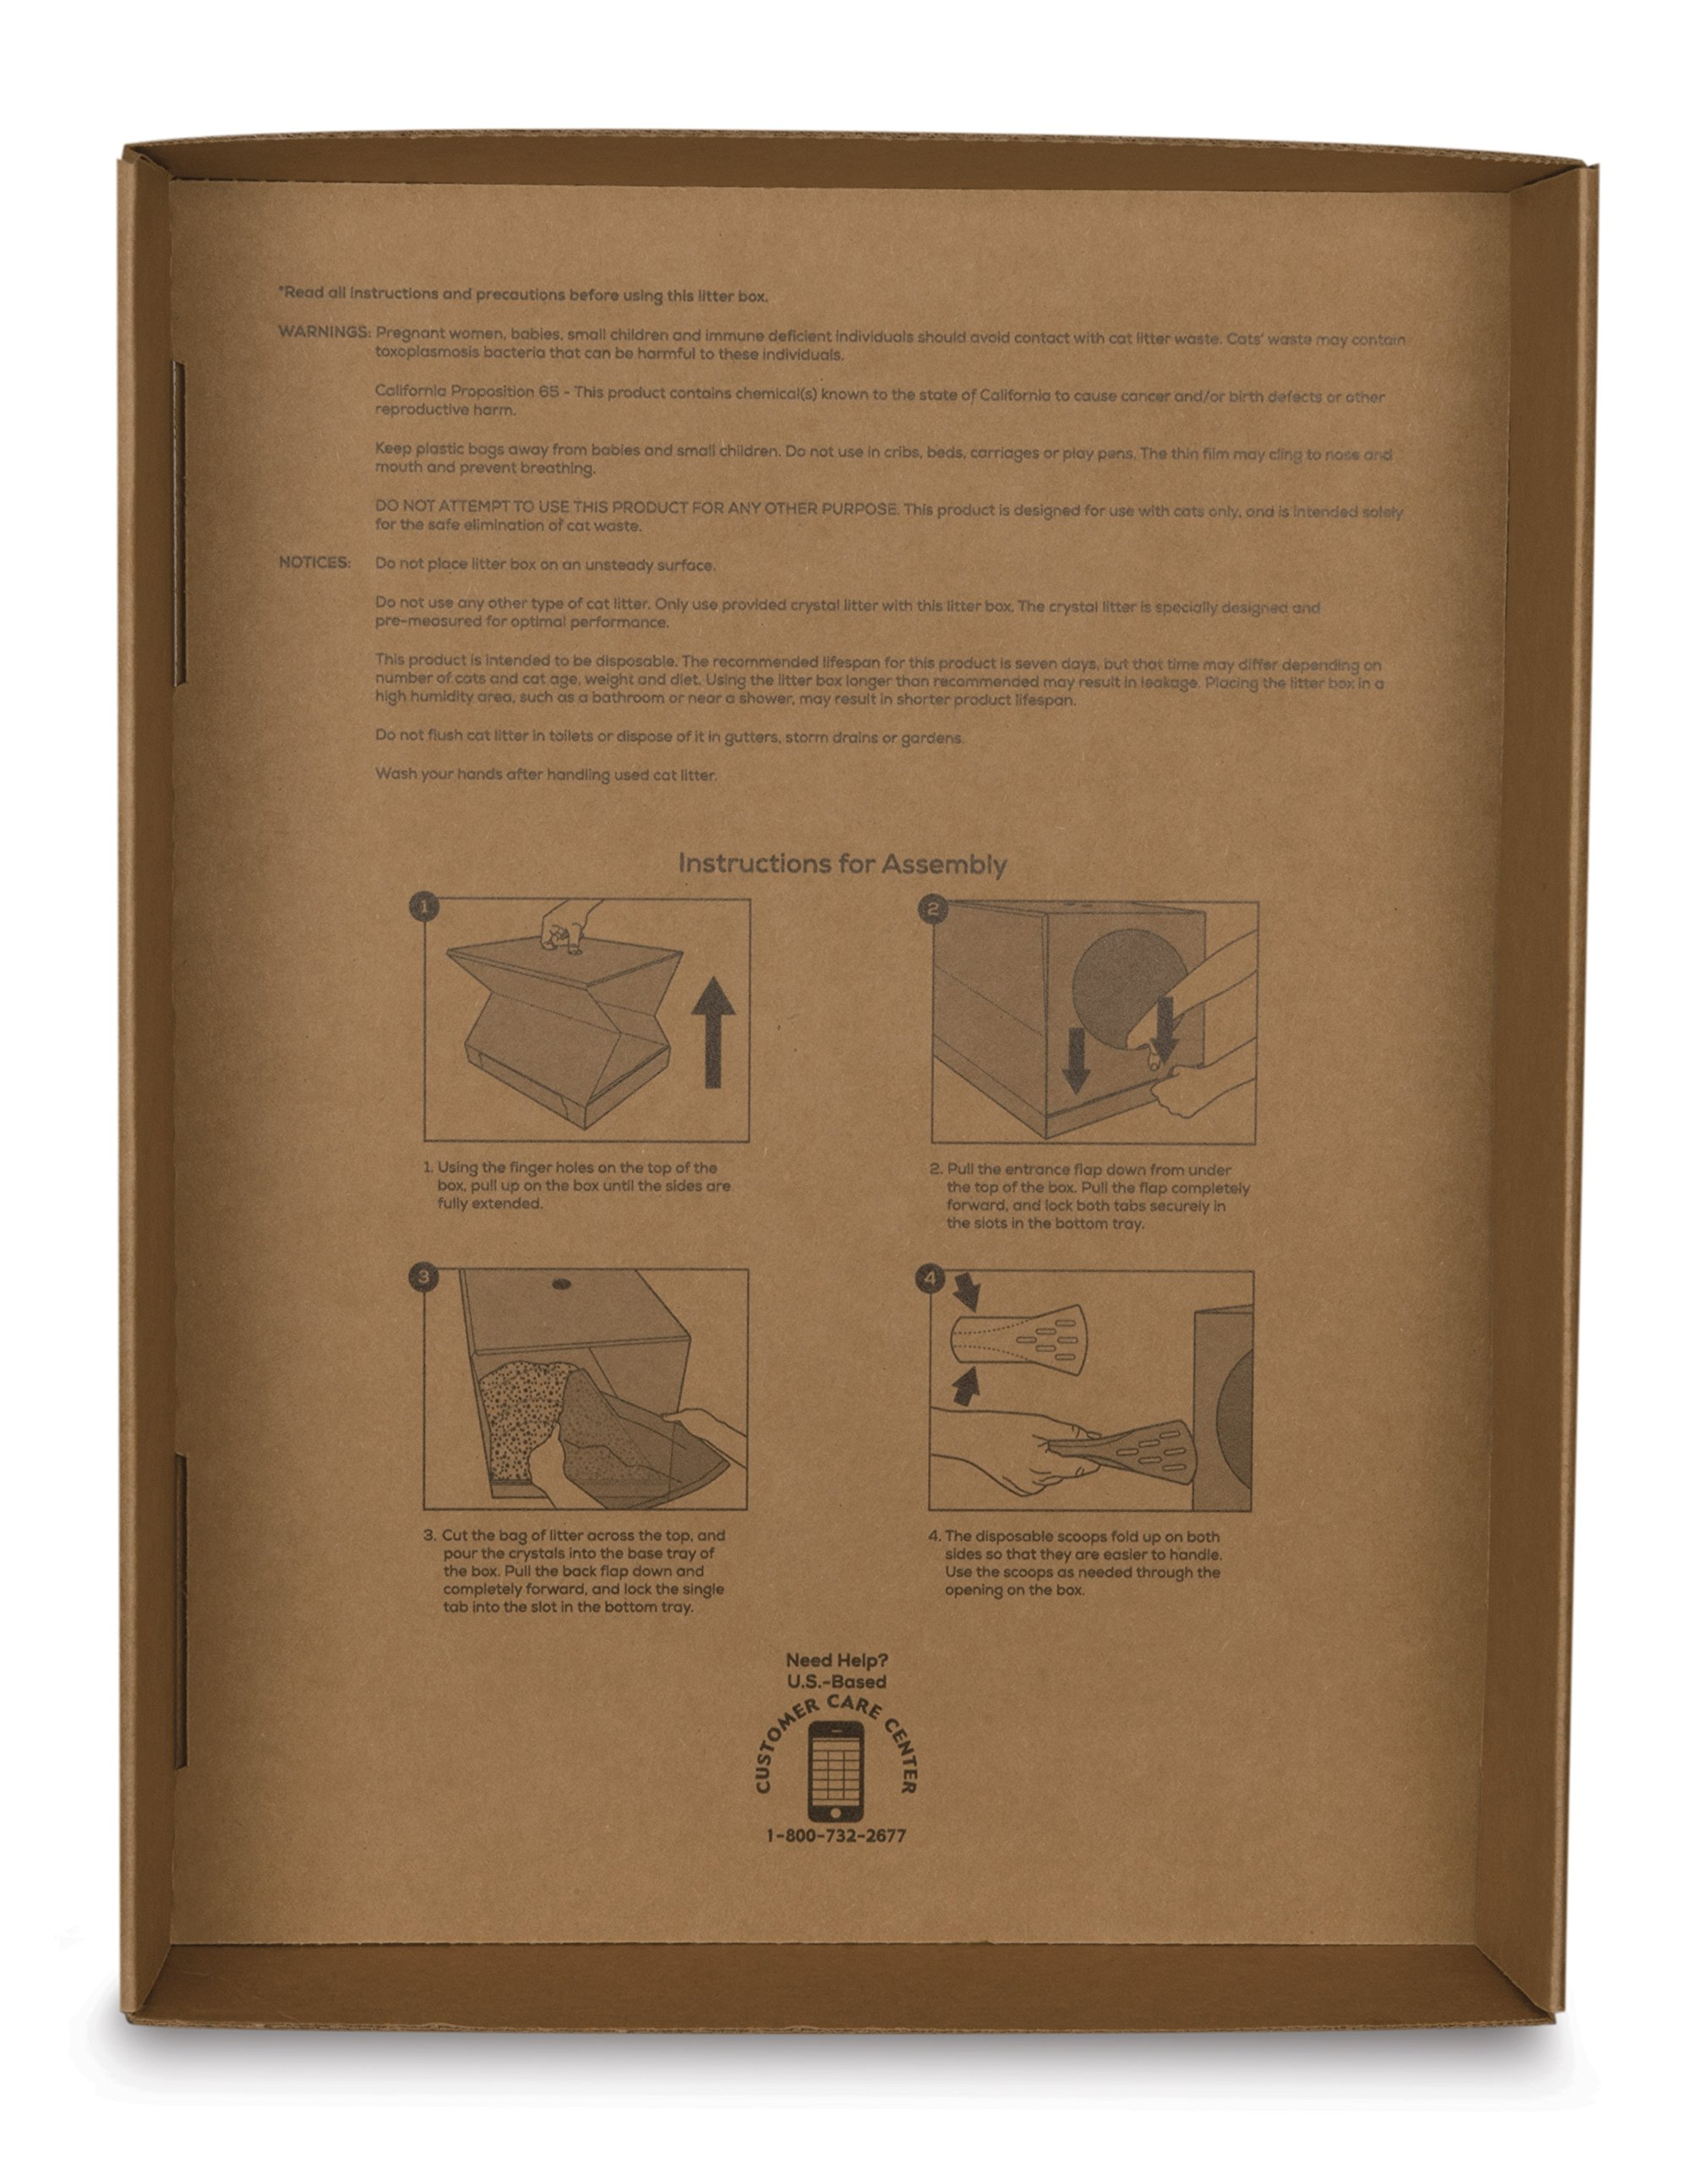 PetSafe Disposable Cat Litter Box, Collapsible Covered Design for Travel, from the Makers of ScoopFree Self Cleaning Litter Box 6